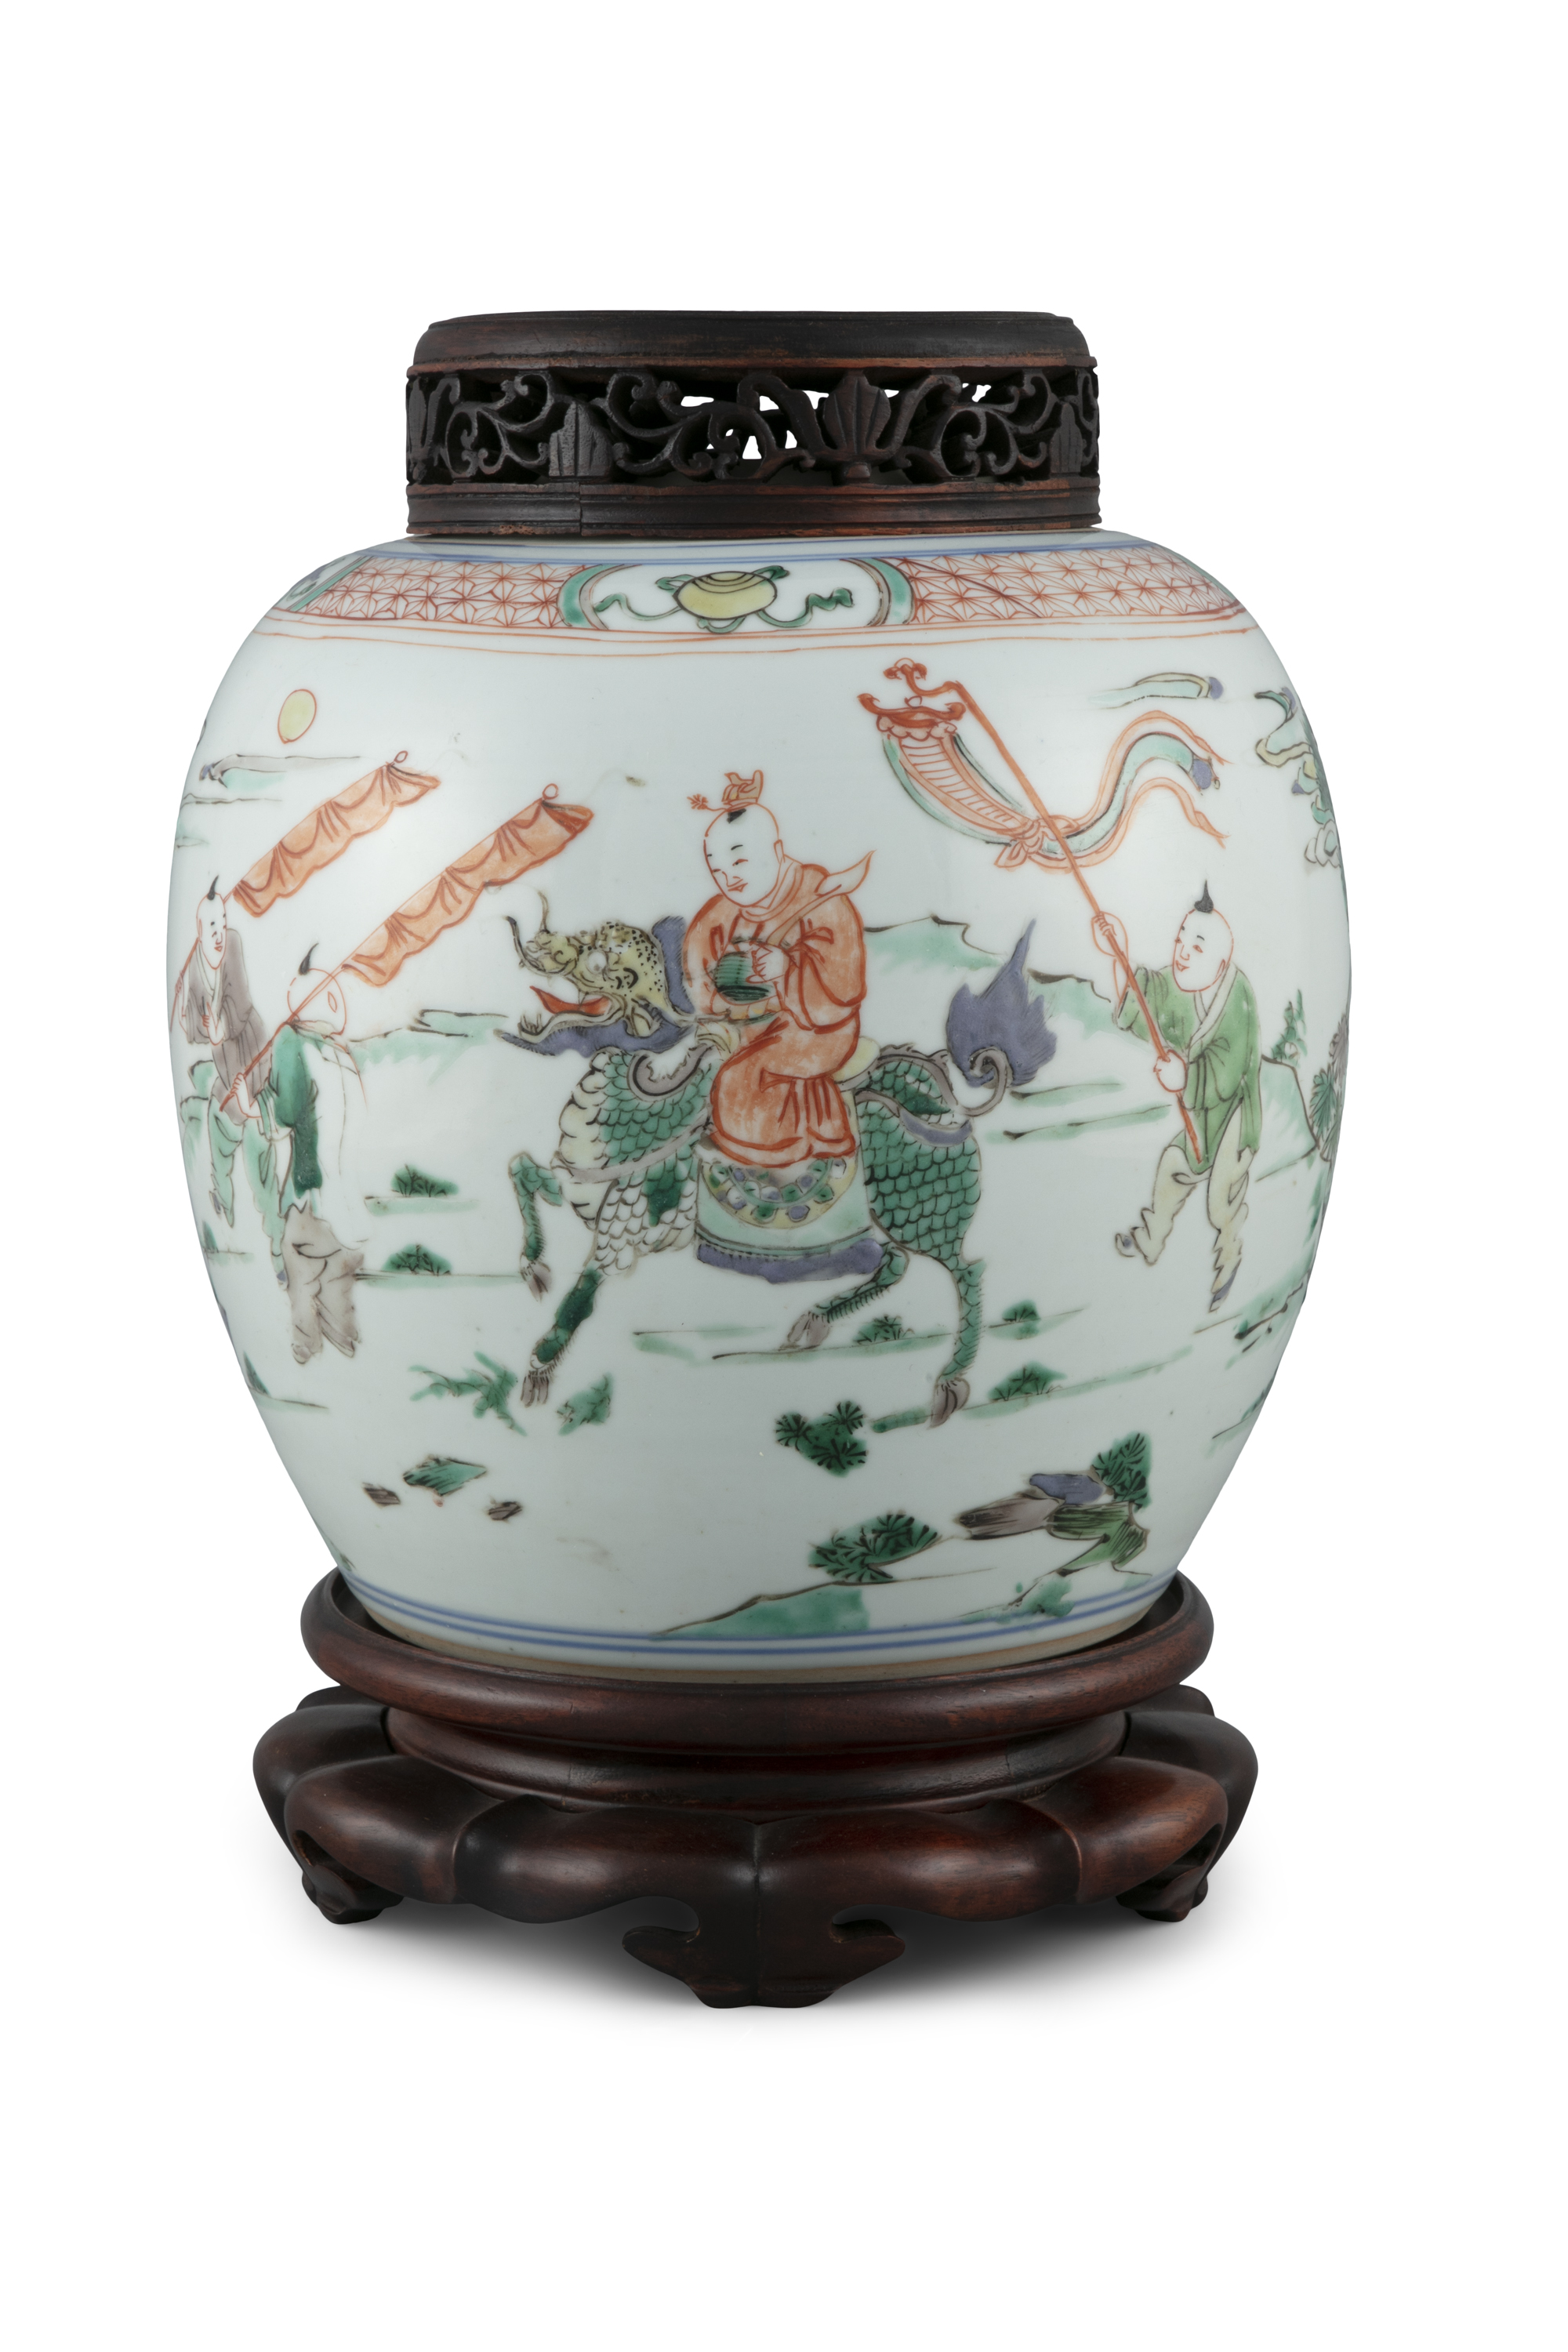 A FAMILLE VERTE 'BOY AND QILIN' PORCELAIN GINGER JAR China, Qing Dynasty, Kangxi period Adorned in - Image 2 of 20